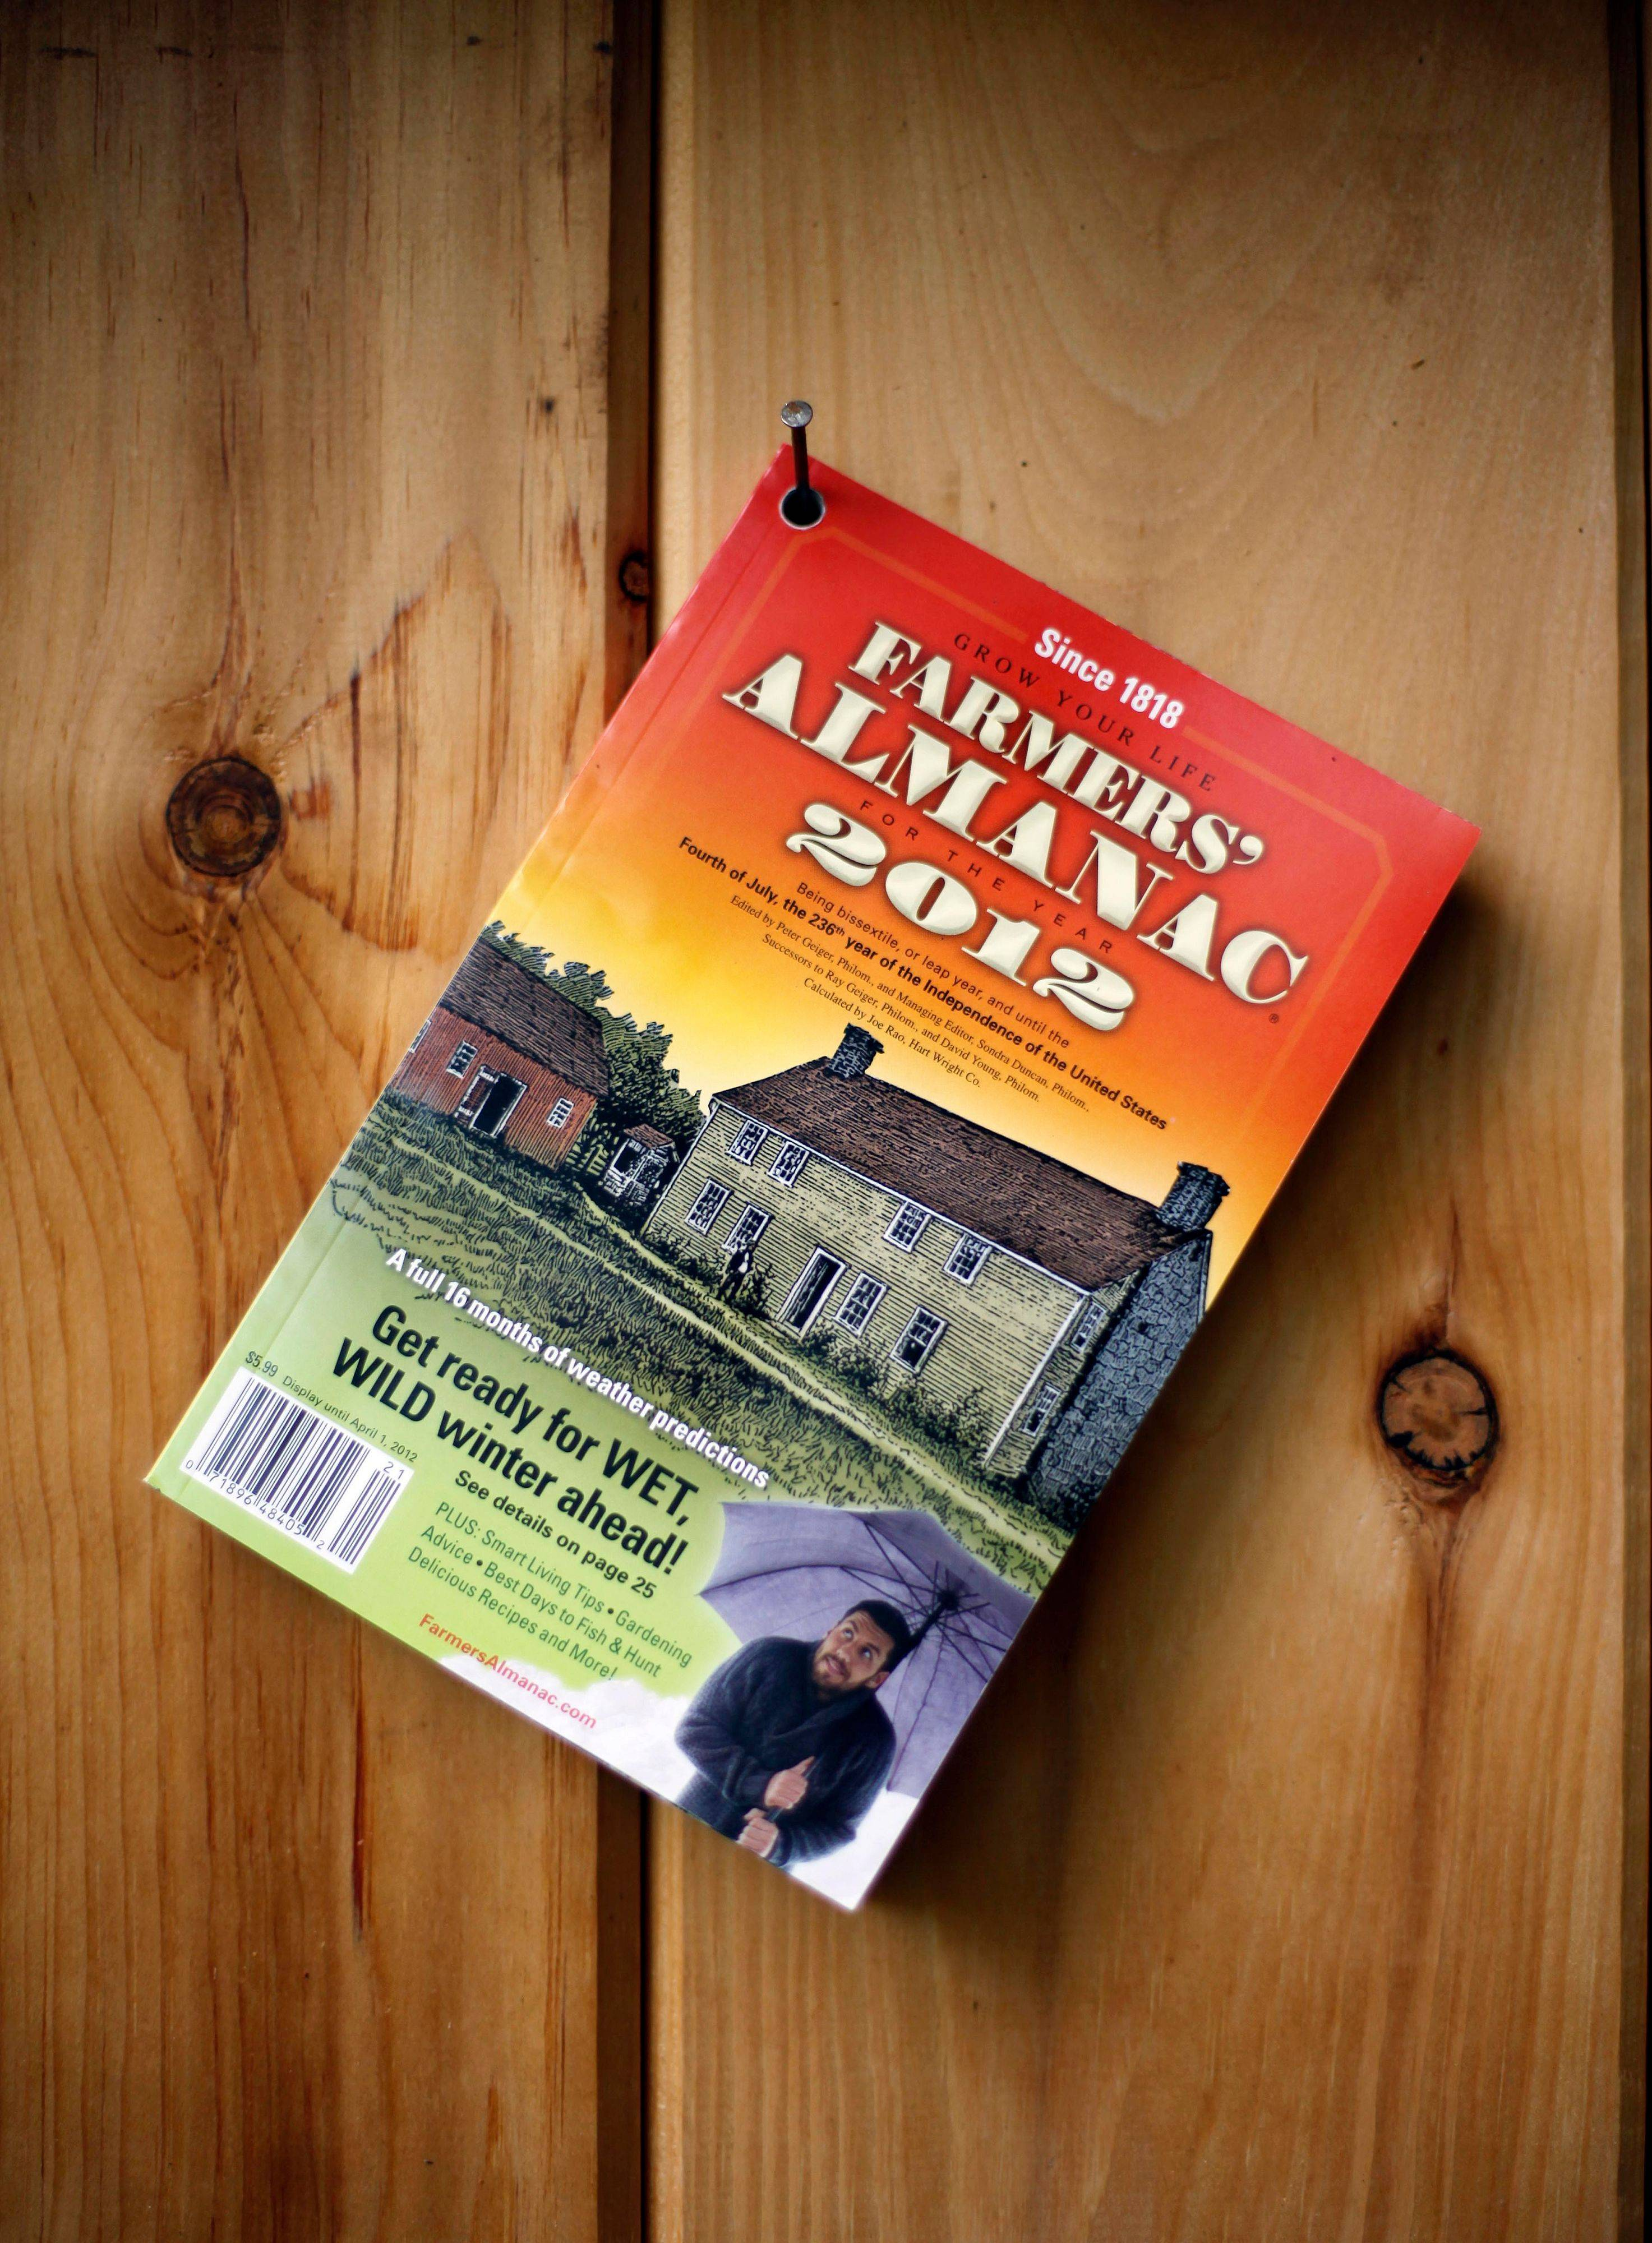 The Farmers' Almanac's publishers still continue the tradition started in 1910 of pre-drilling holes in the corner for hanging on an outhouse hook.